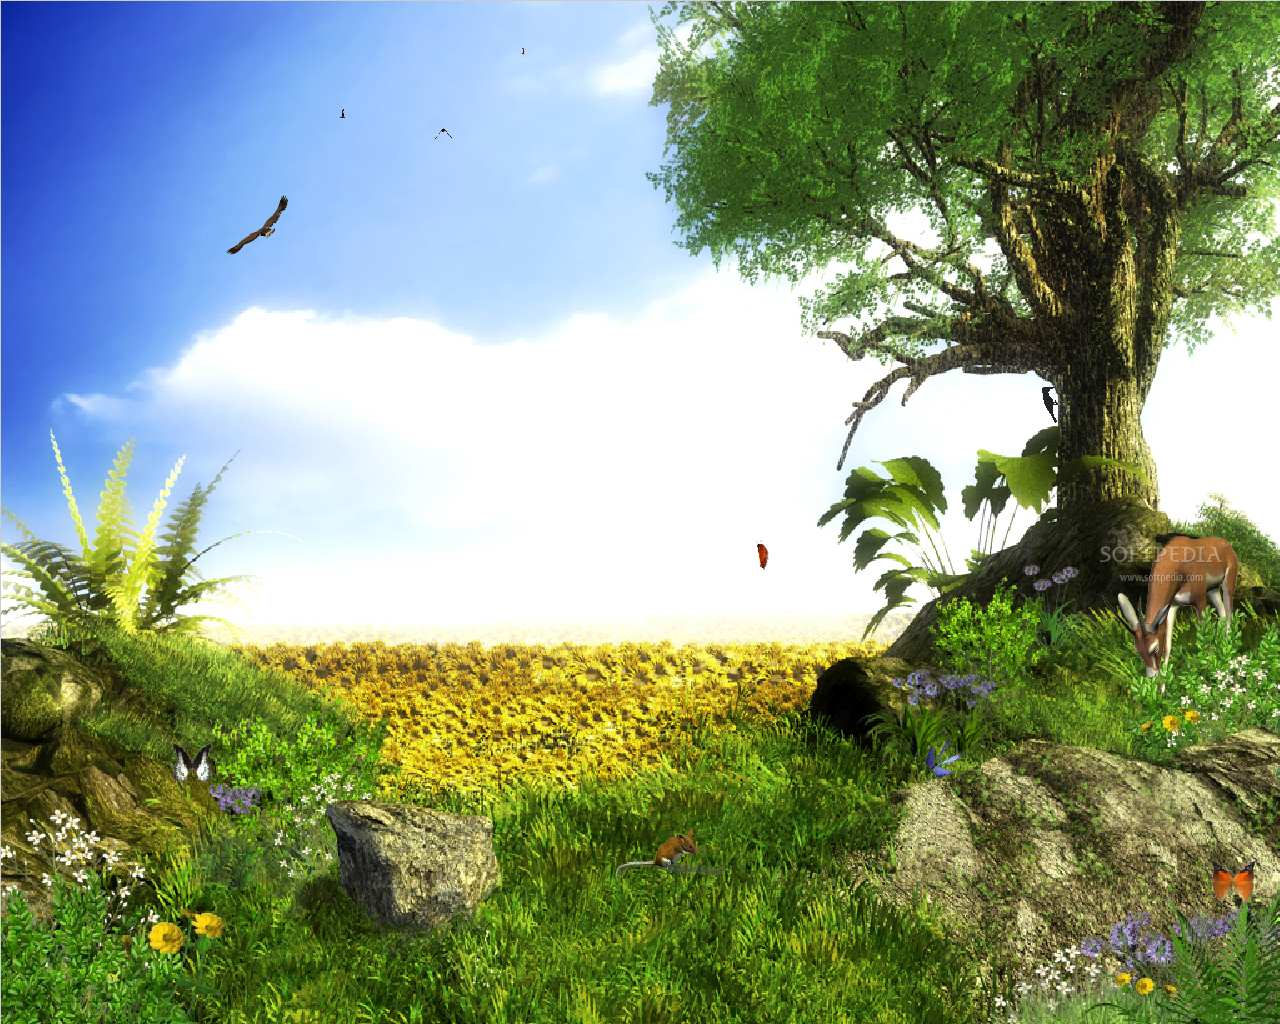 ... Background Wallpapers | Moving Animated Desktop backgrounds wallpaper